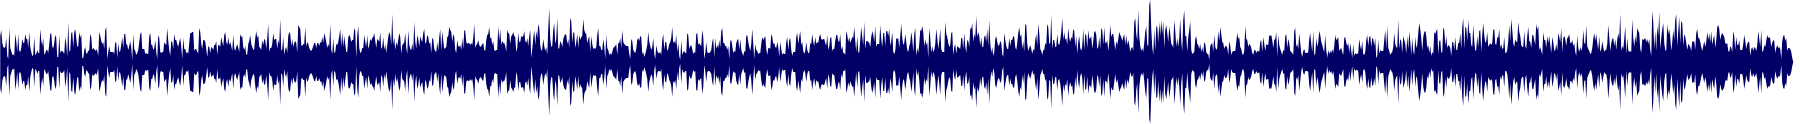 waveform of track #72251